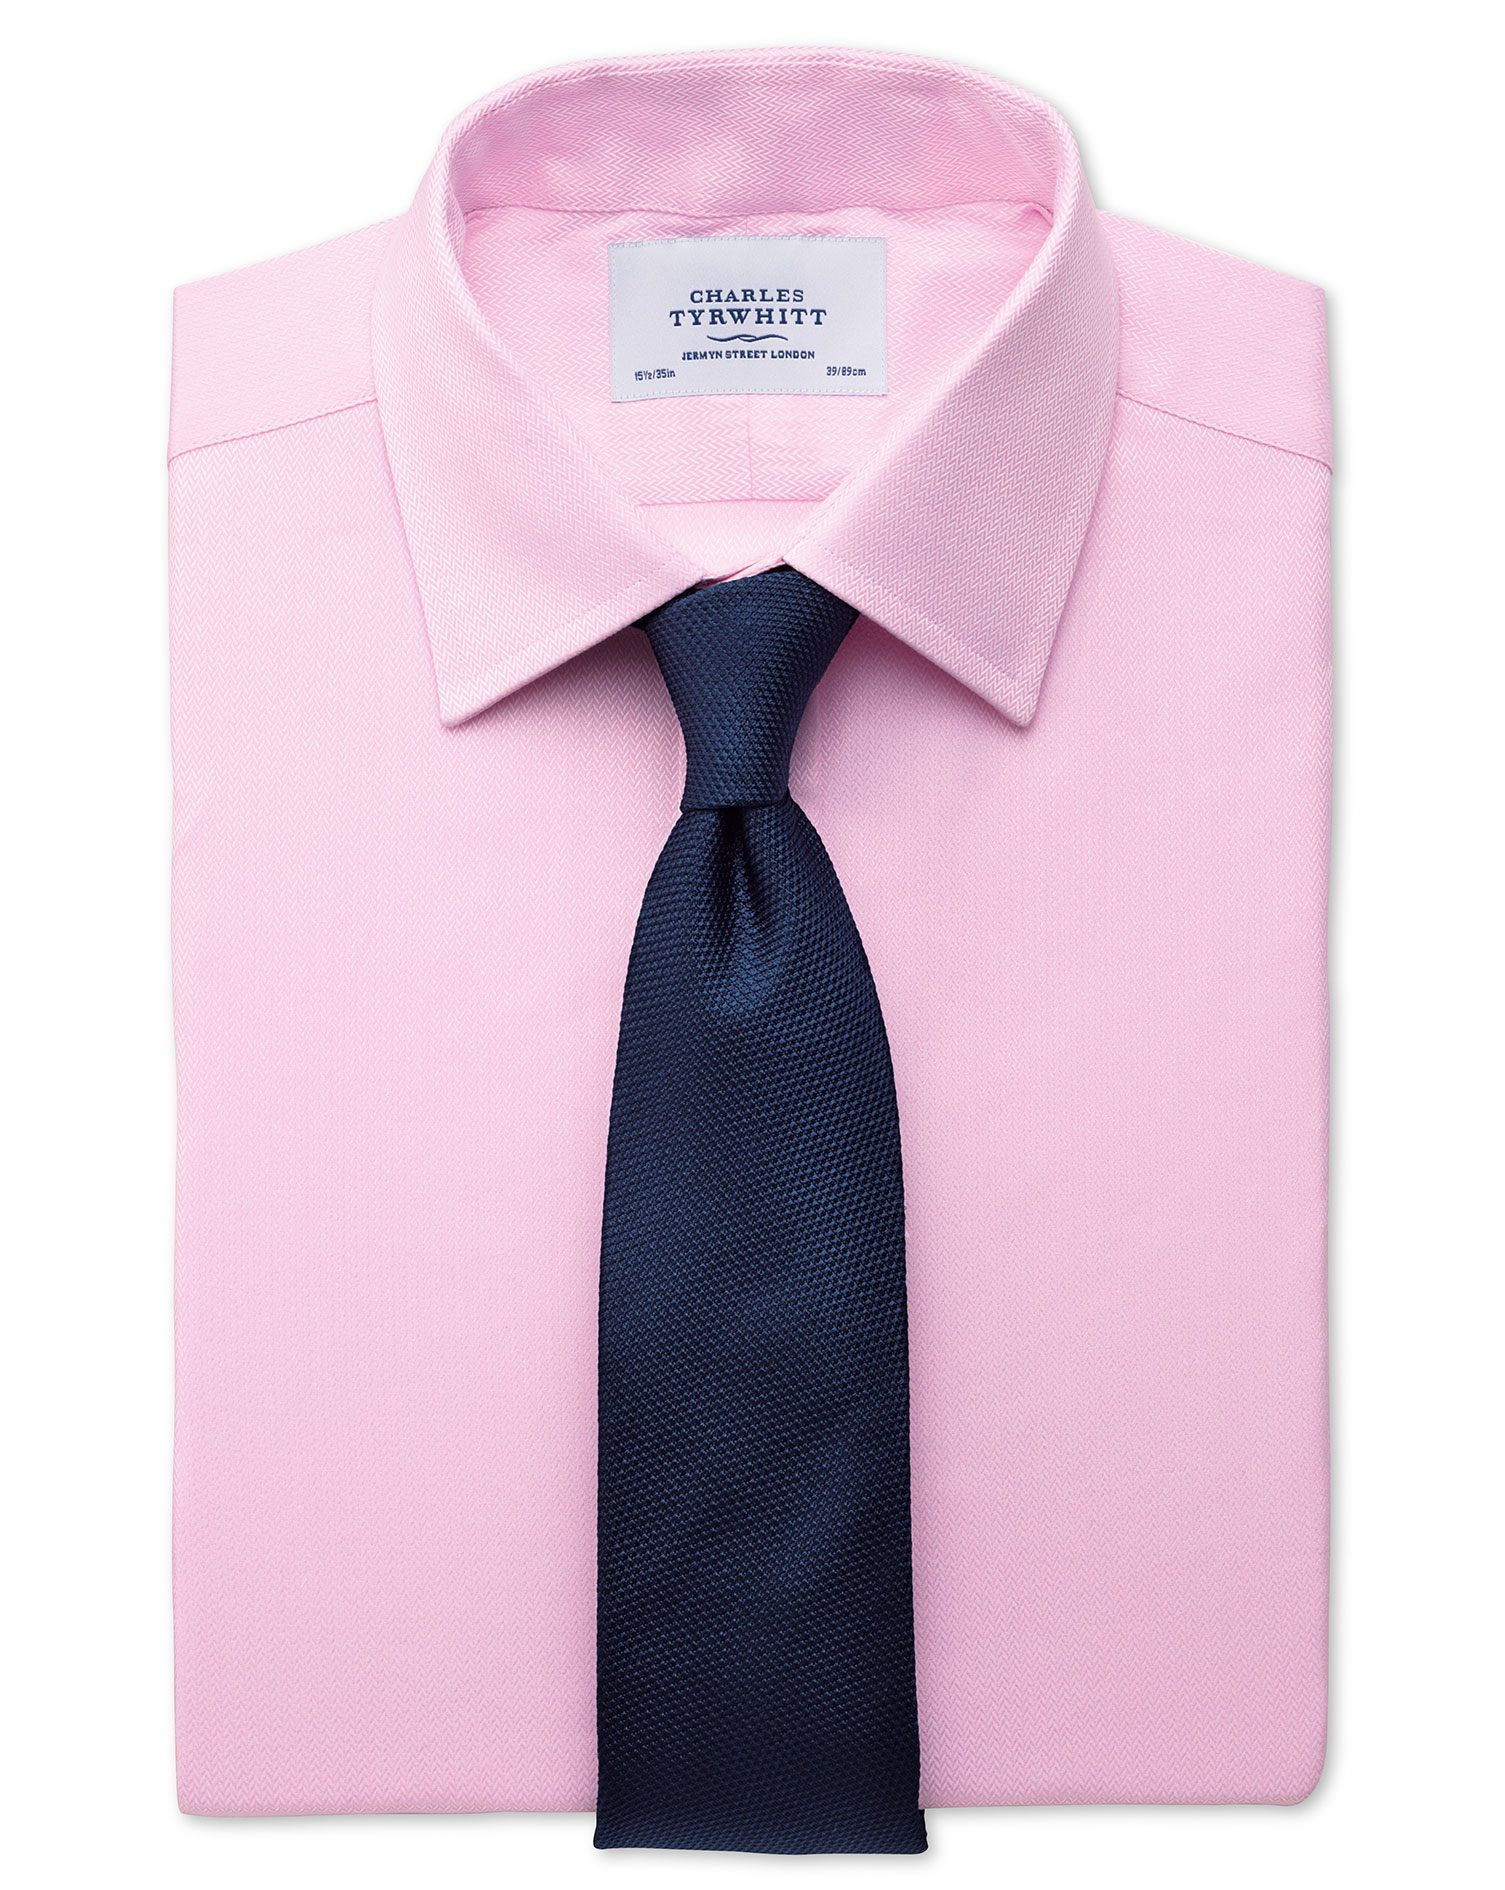 Slim Fit Small Herringbone Pink Cotton Formal Shirt Single Cuff Size 16.5/35 by Charles Tyrwhitt